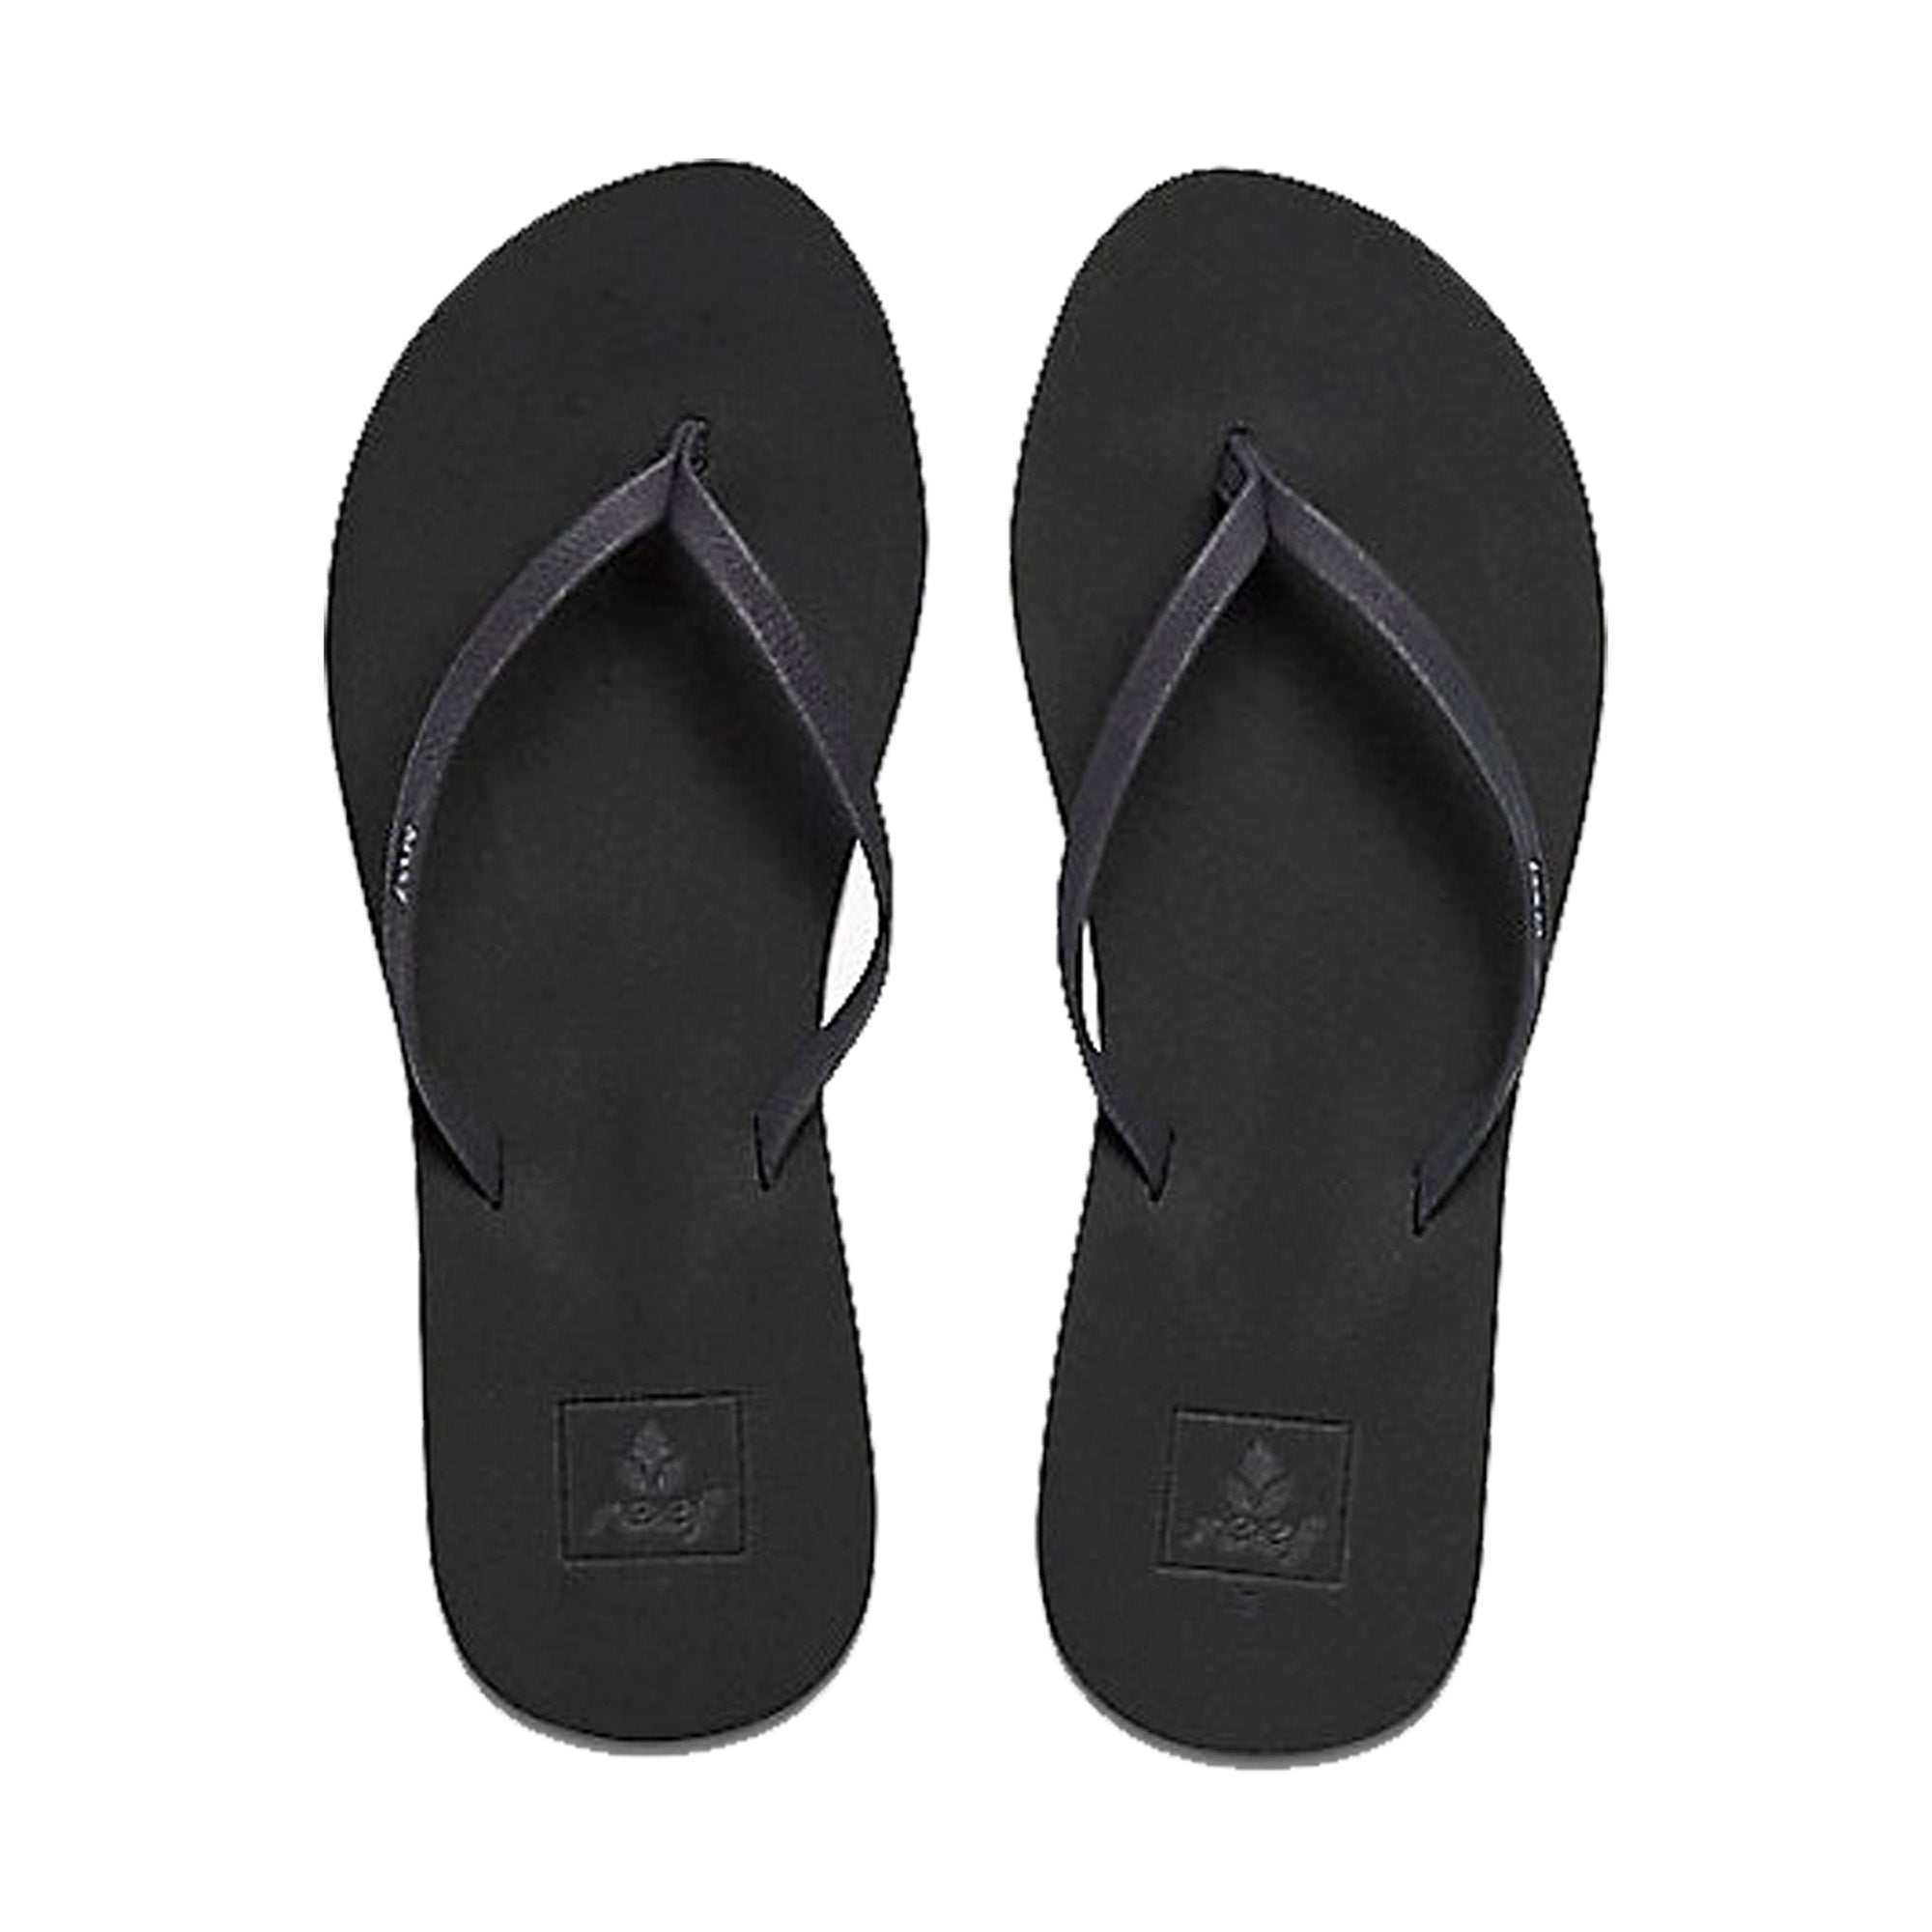 Reef Bliss Nights Women's Sandals